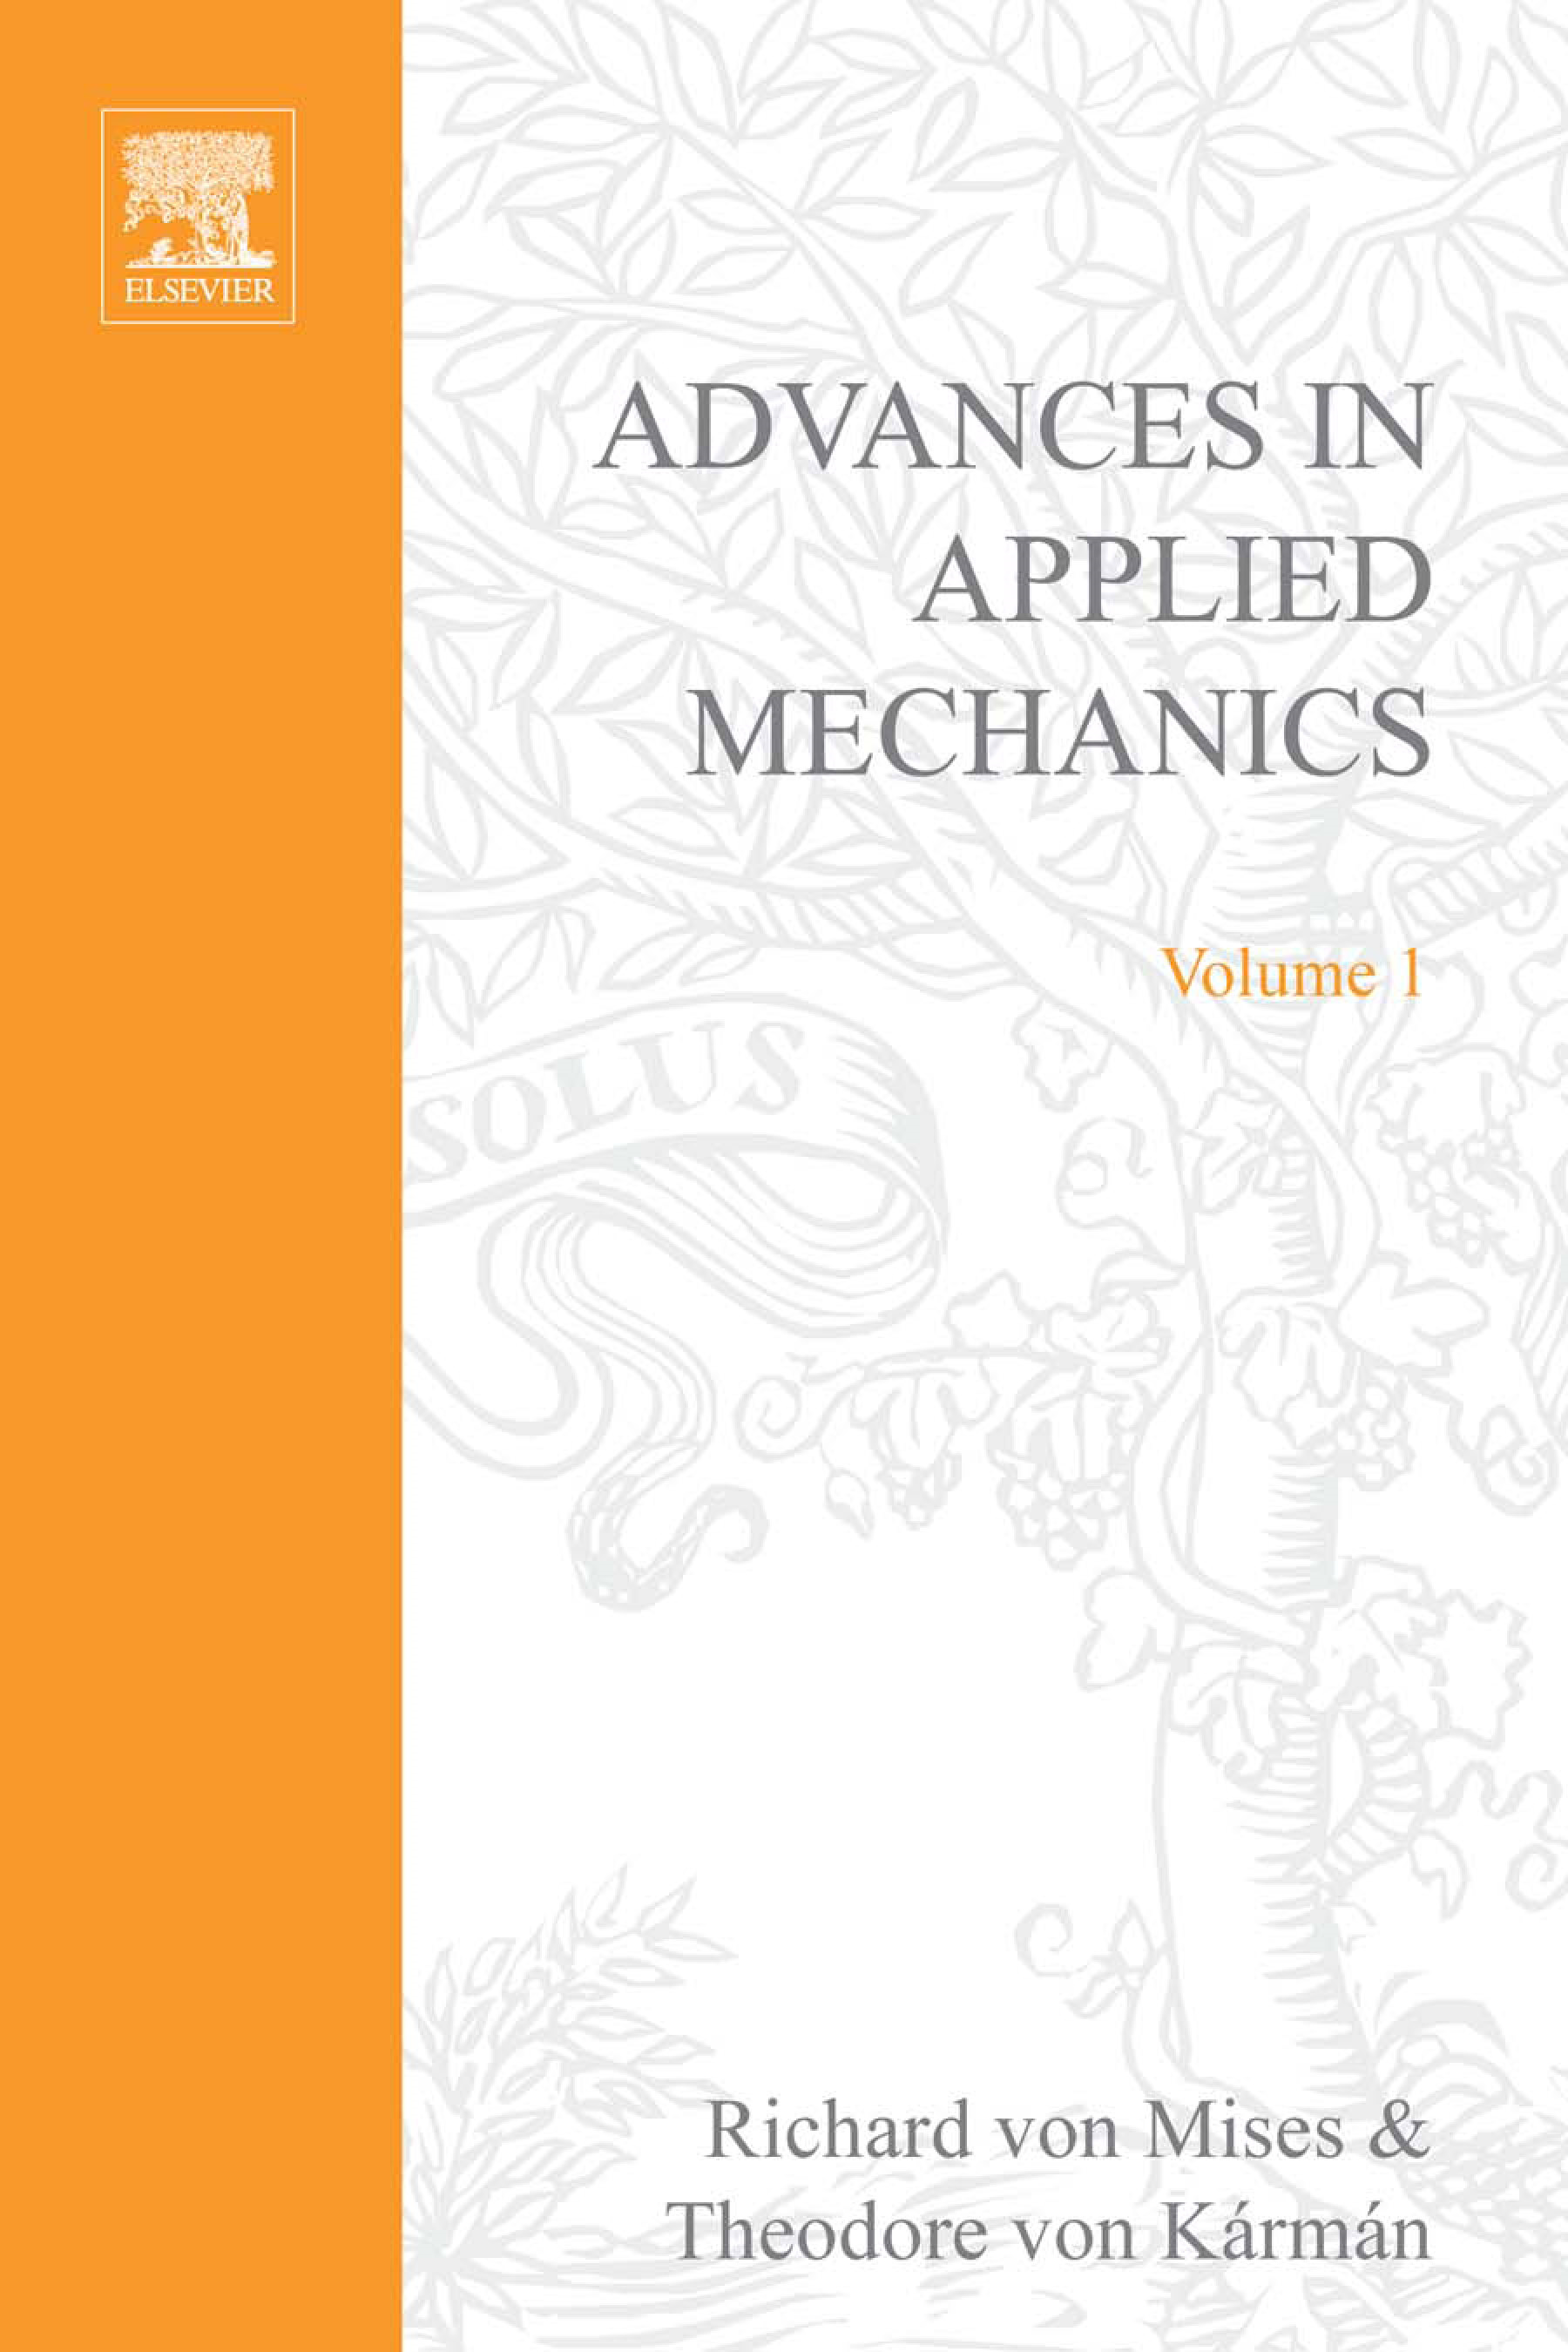 ADVANCES IN APPLIED MECHANICS VOLUME 1